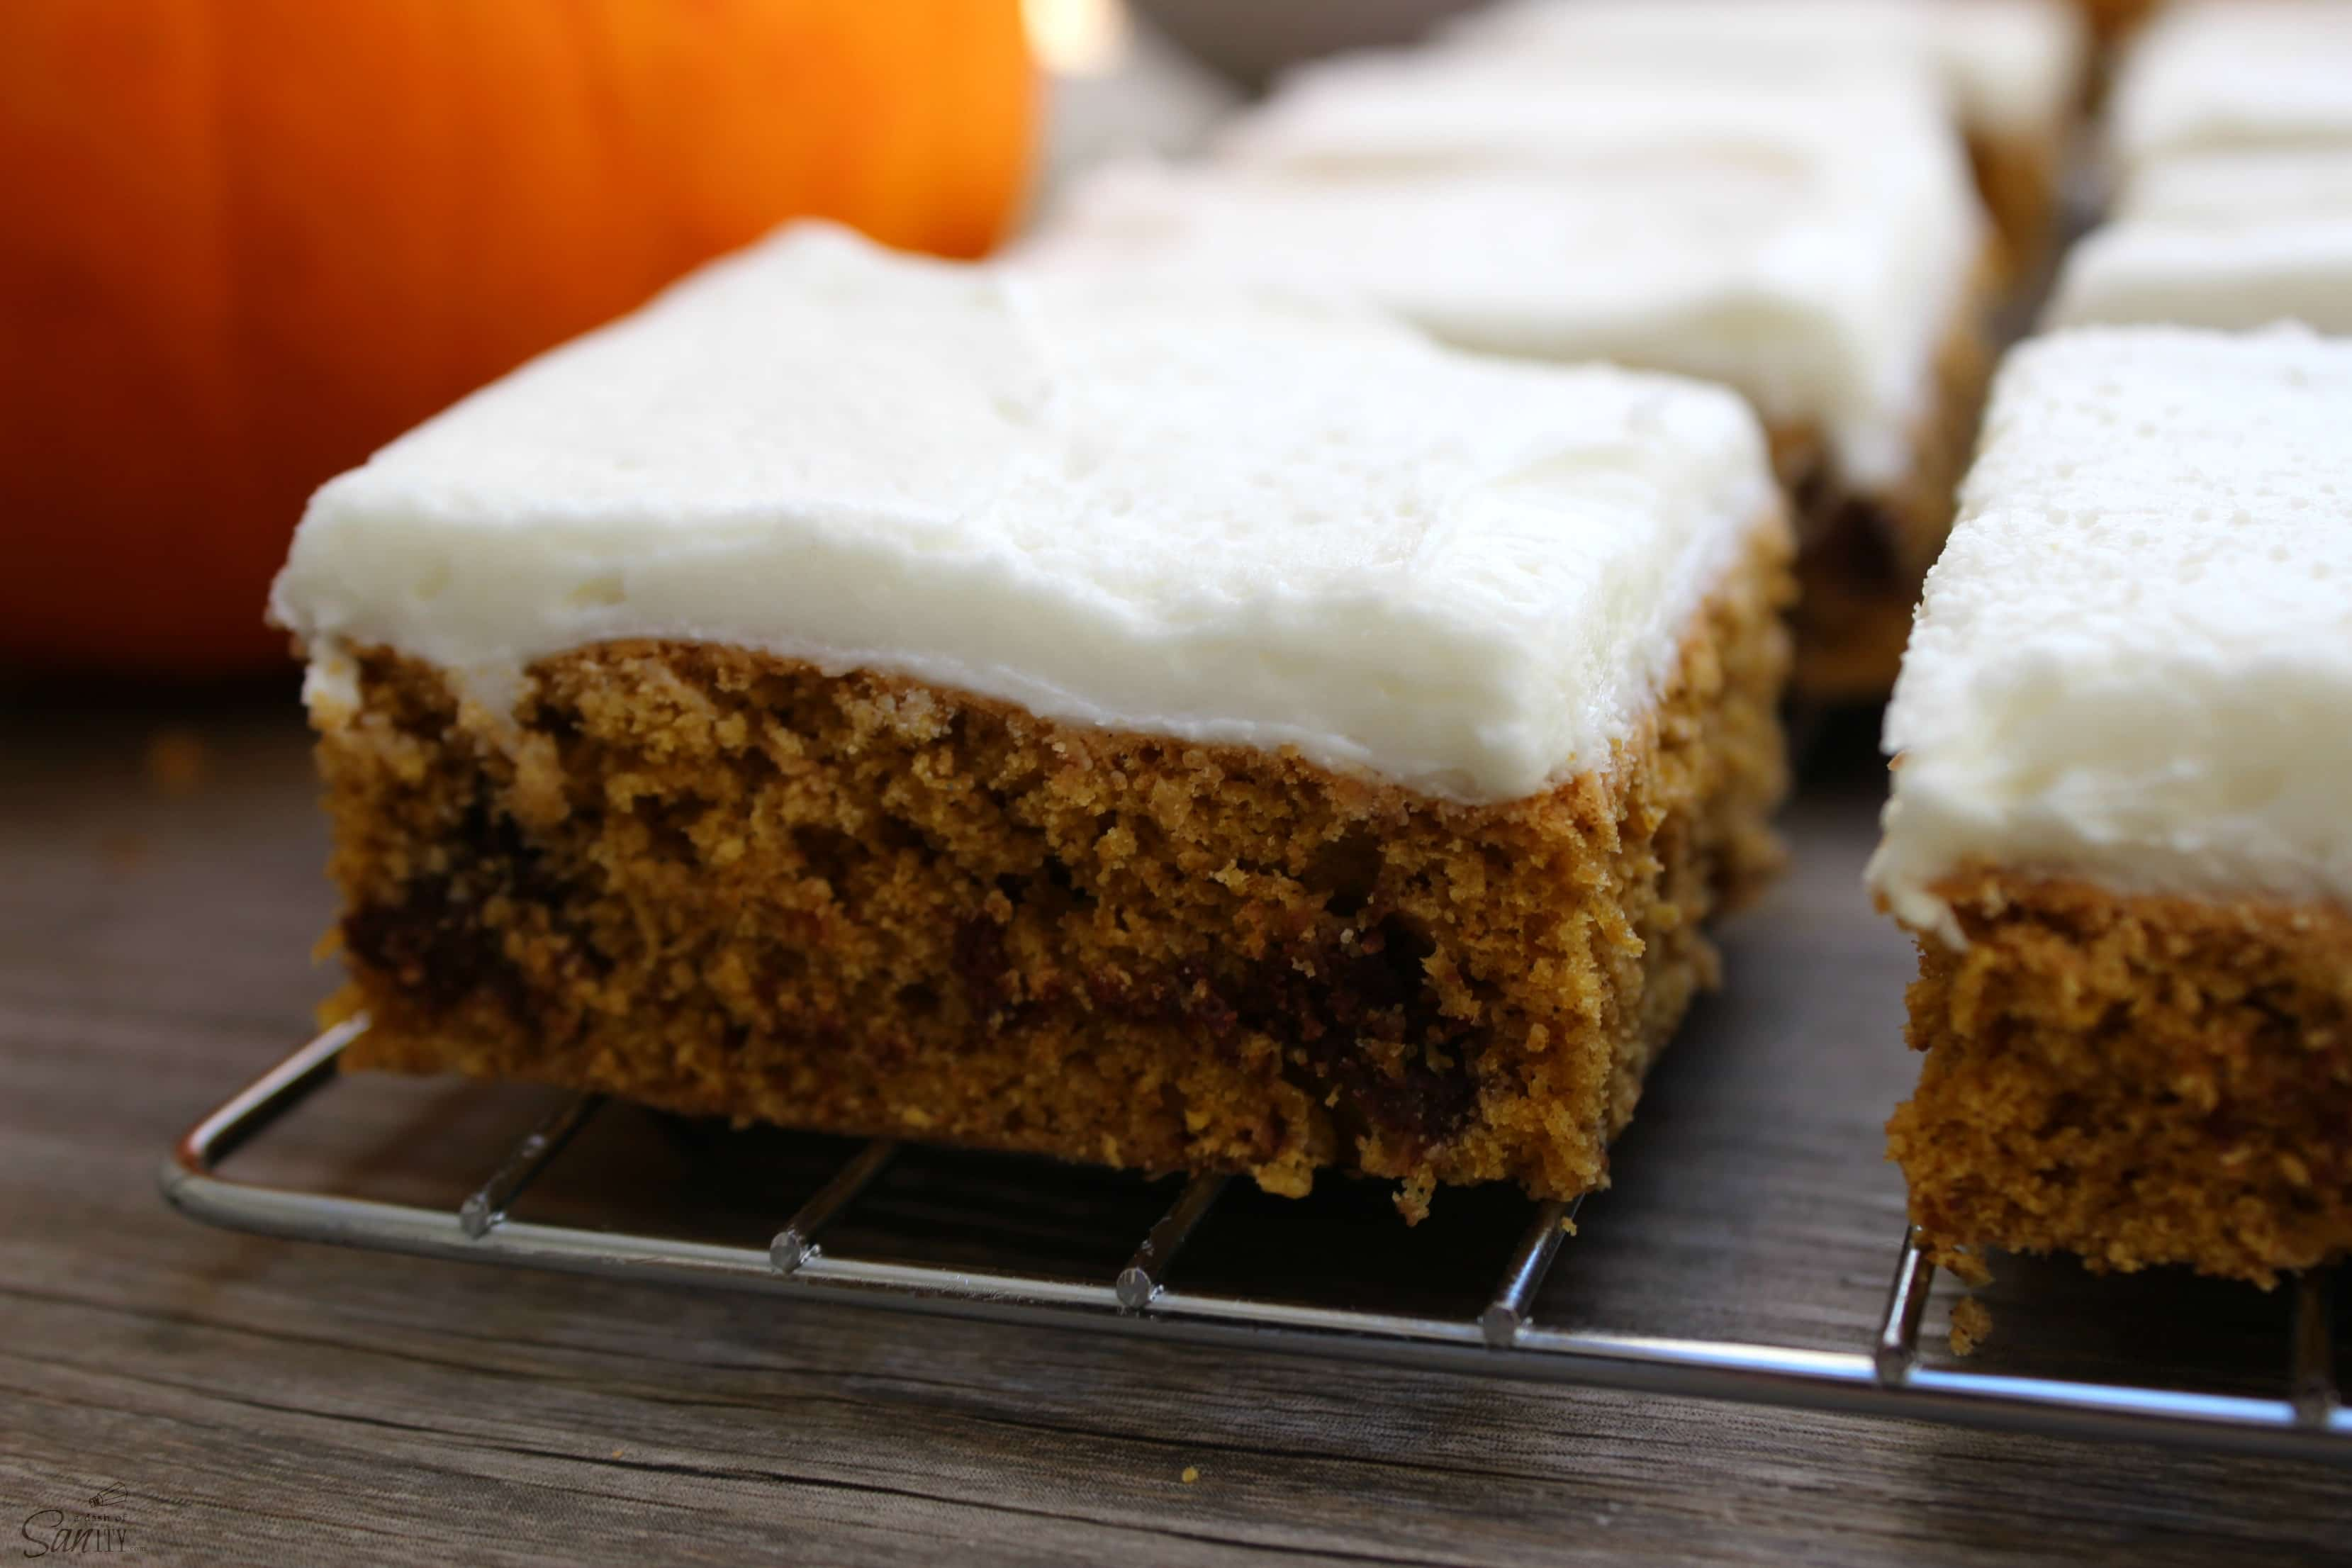 These Pumpkin Chocolate Chip Cookie Bars are something you must try this fall. In fact, it would make a perfect treat for the upcoming holidays!